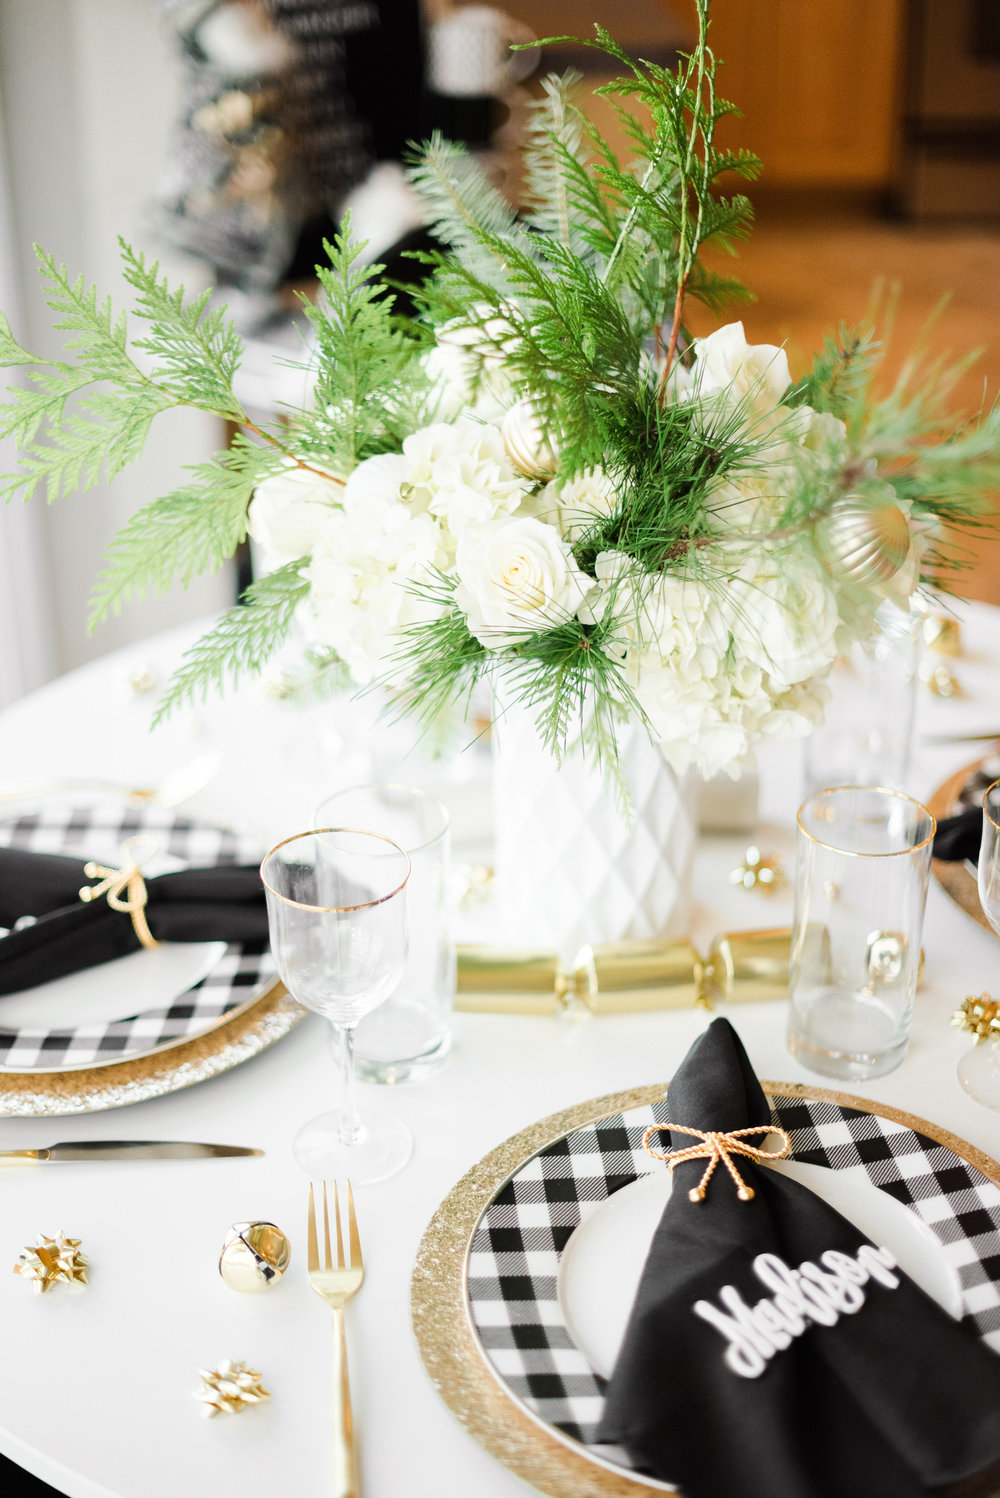 Glam Black & White Christmas & Holiday Inspiration. Styled by Cassandra Clair of Event Prep